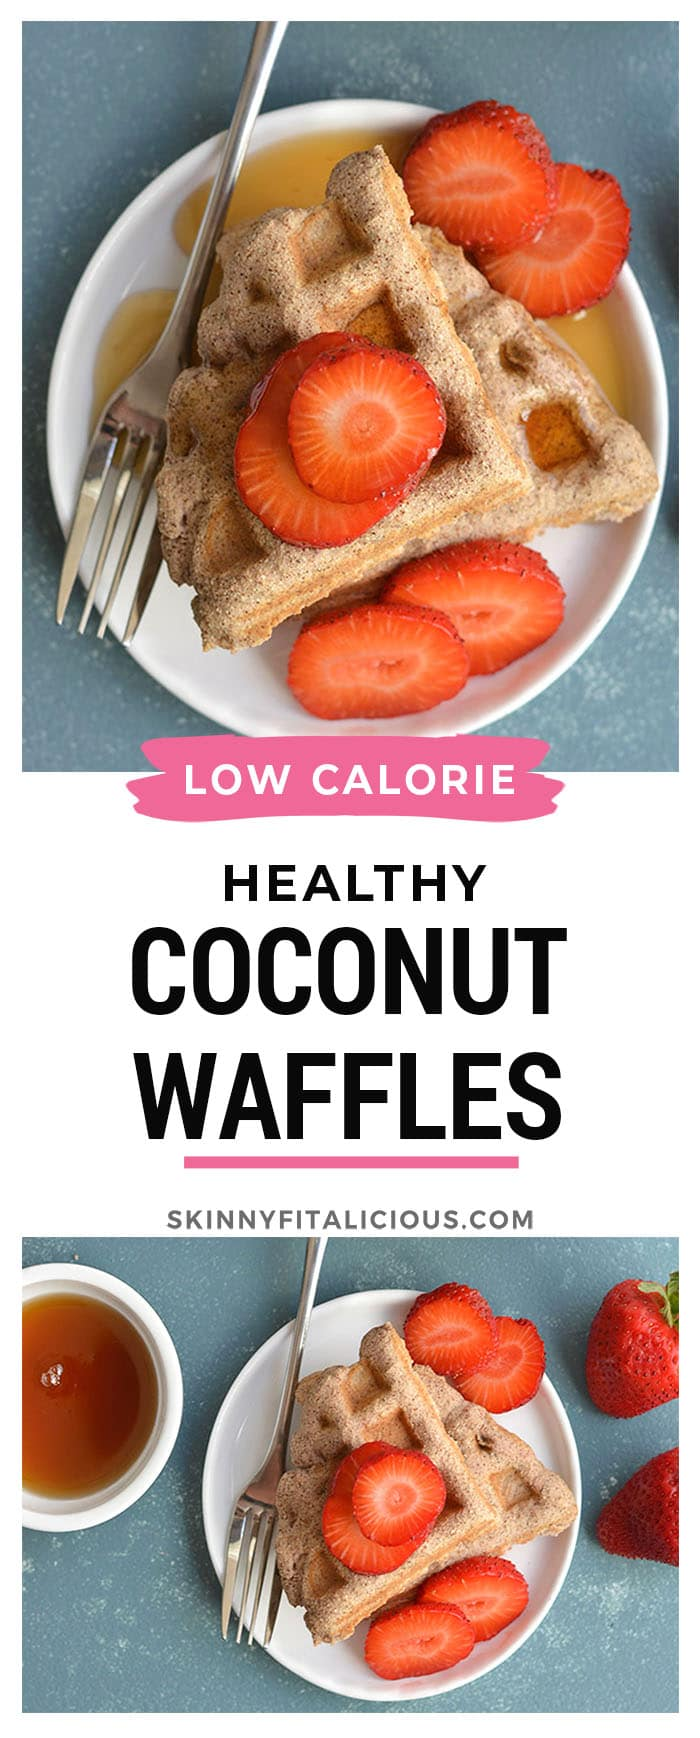 5 Ingredient Coconut Flour Waffles! Made with real food ingredients, these low carb waffles are the perfect fuel for a busy morning or weekend breakfast.